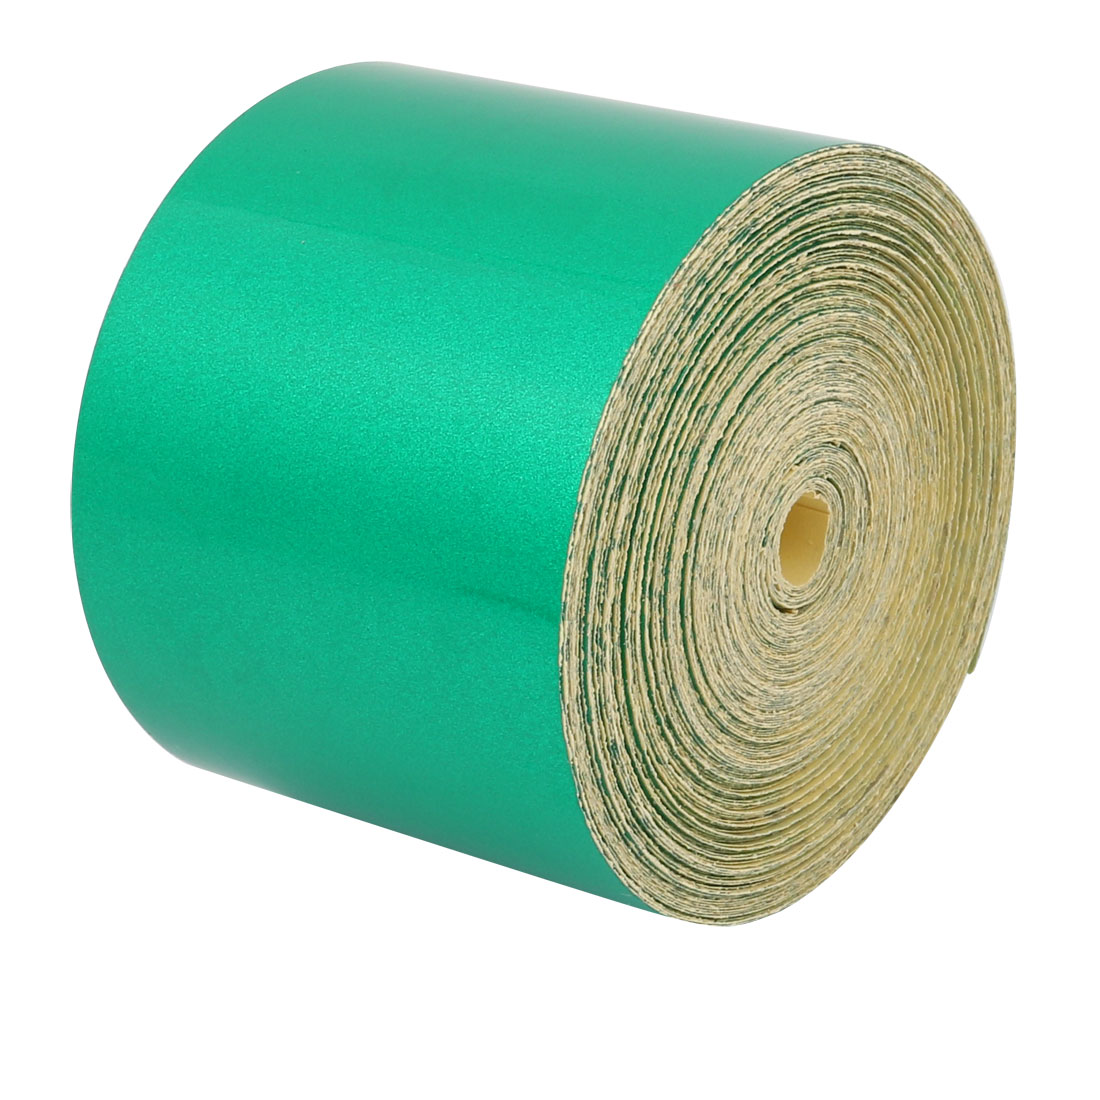 5cm Wide 15 Meter Long Single Sided Adhesive Reflective Warning Tape Green